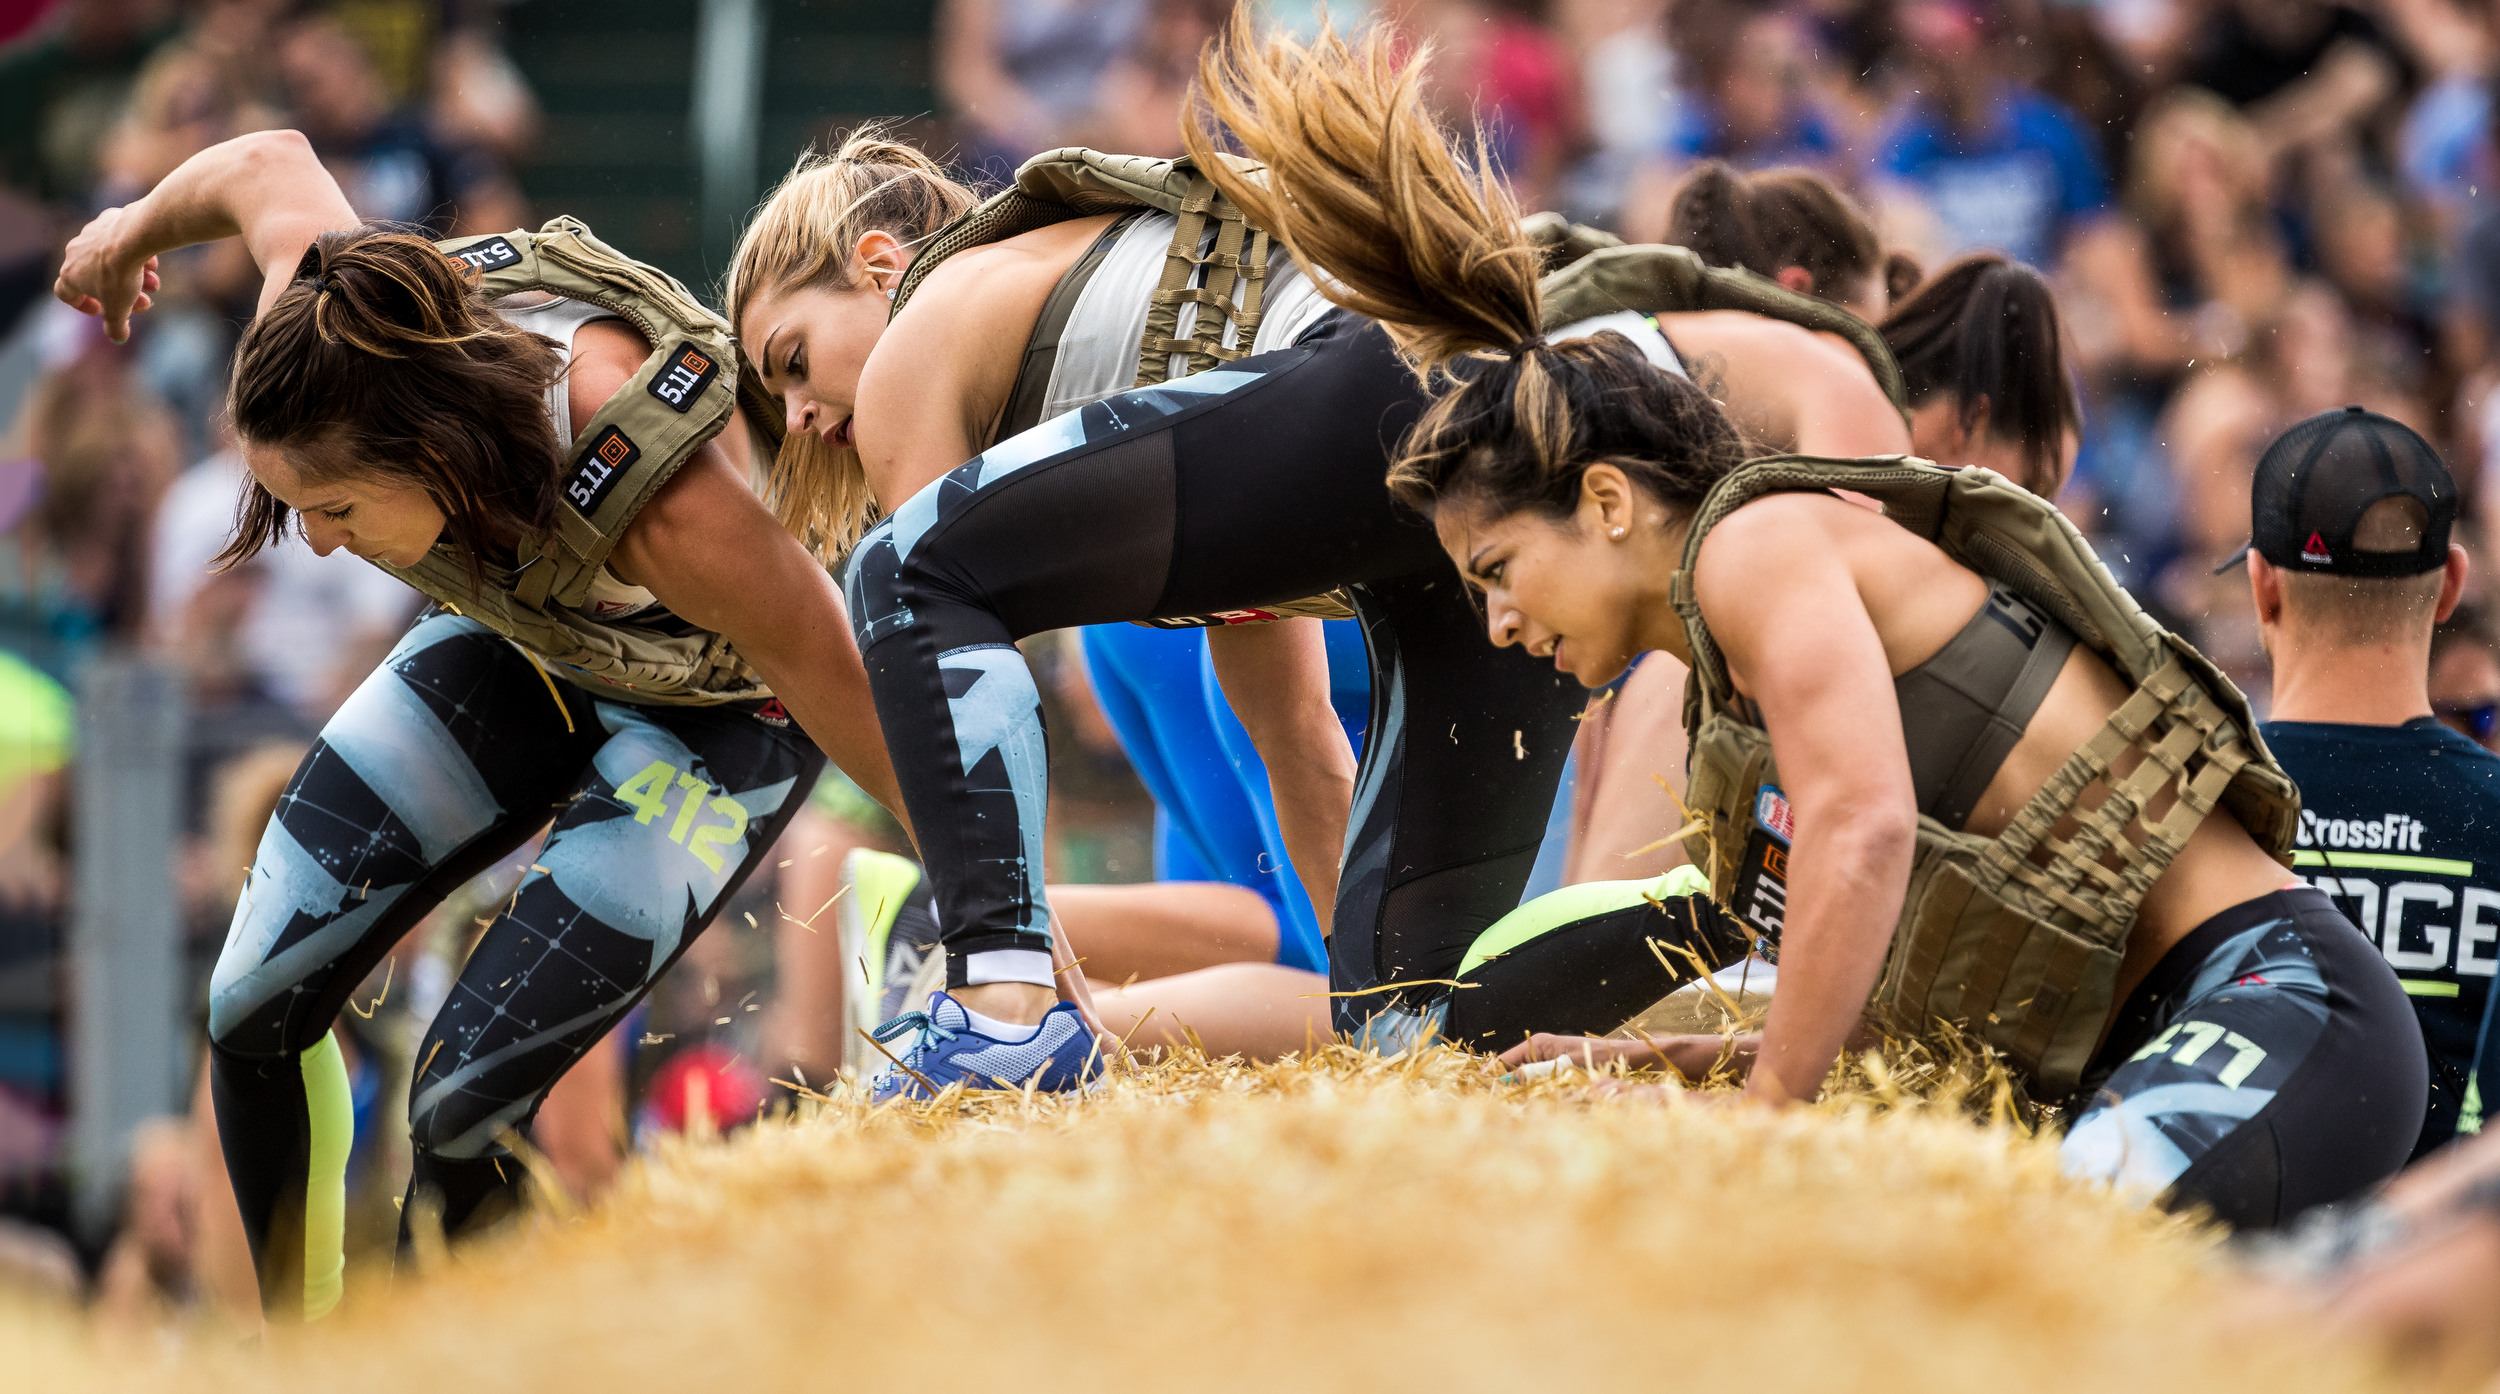 Team athletes maneuver over hay bales at the 2017 Reebok CrossFit Games